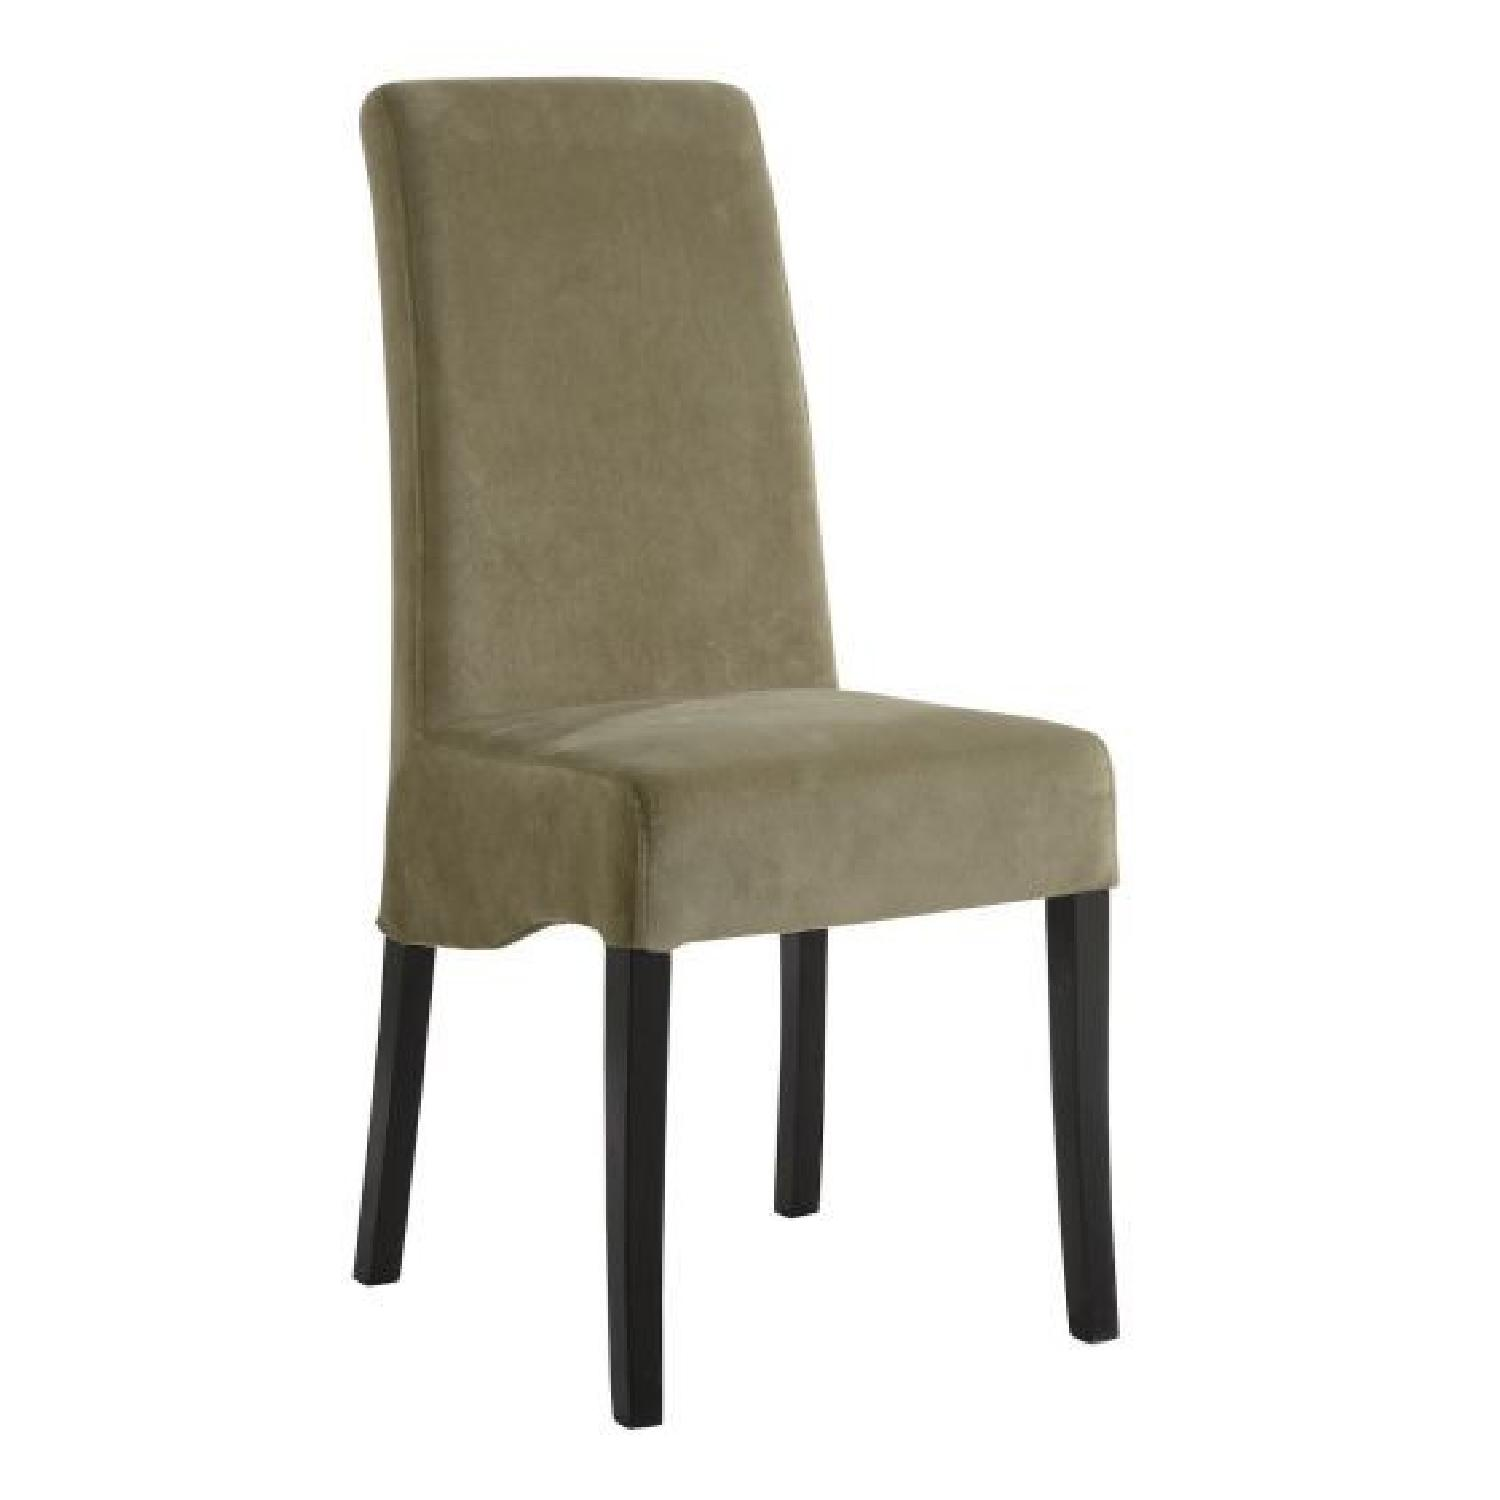 Plush Dining Chairs in Green Fabric Upholstery